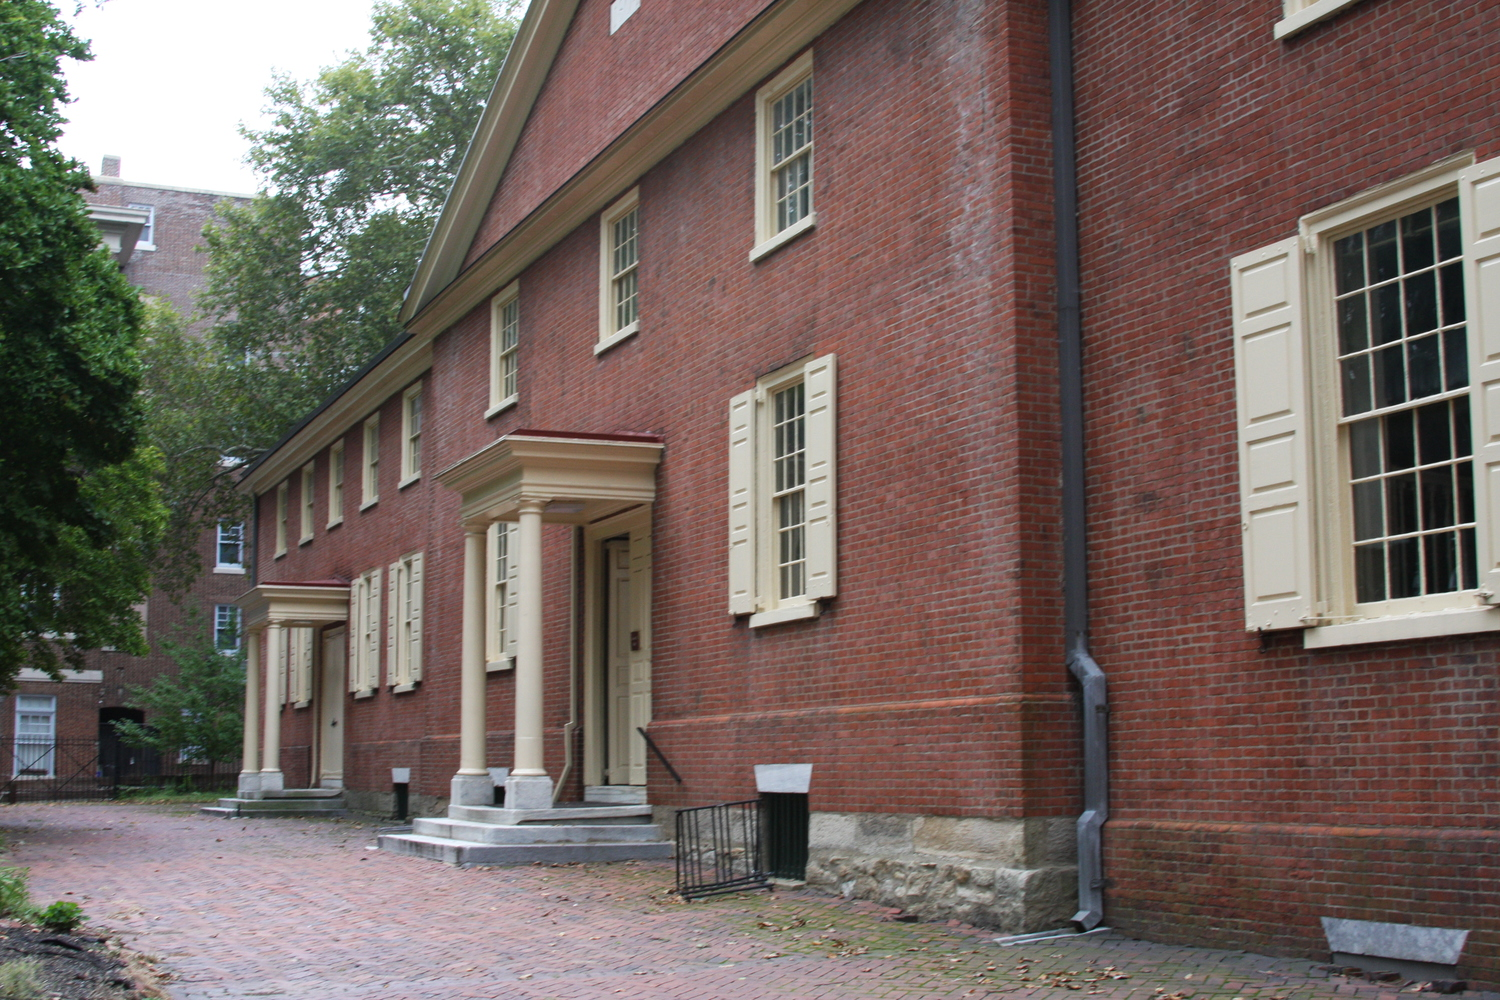 The Arch Street Quaker Meeting House